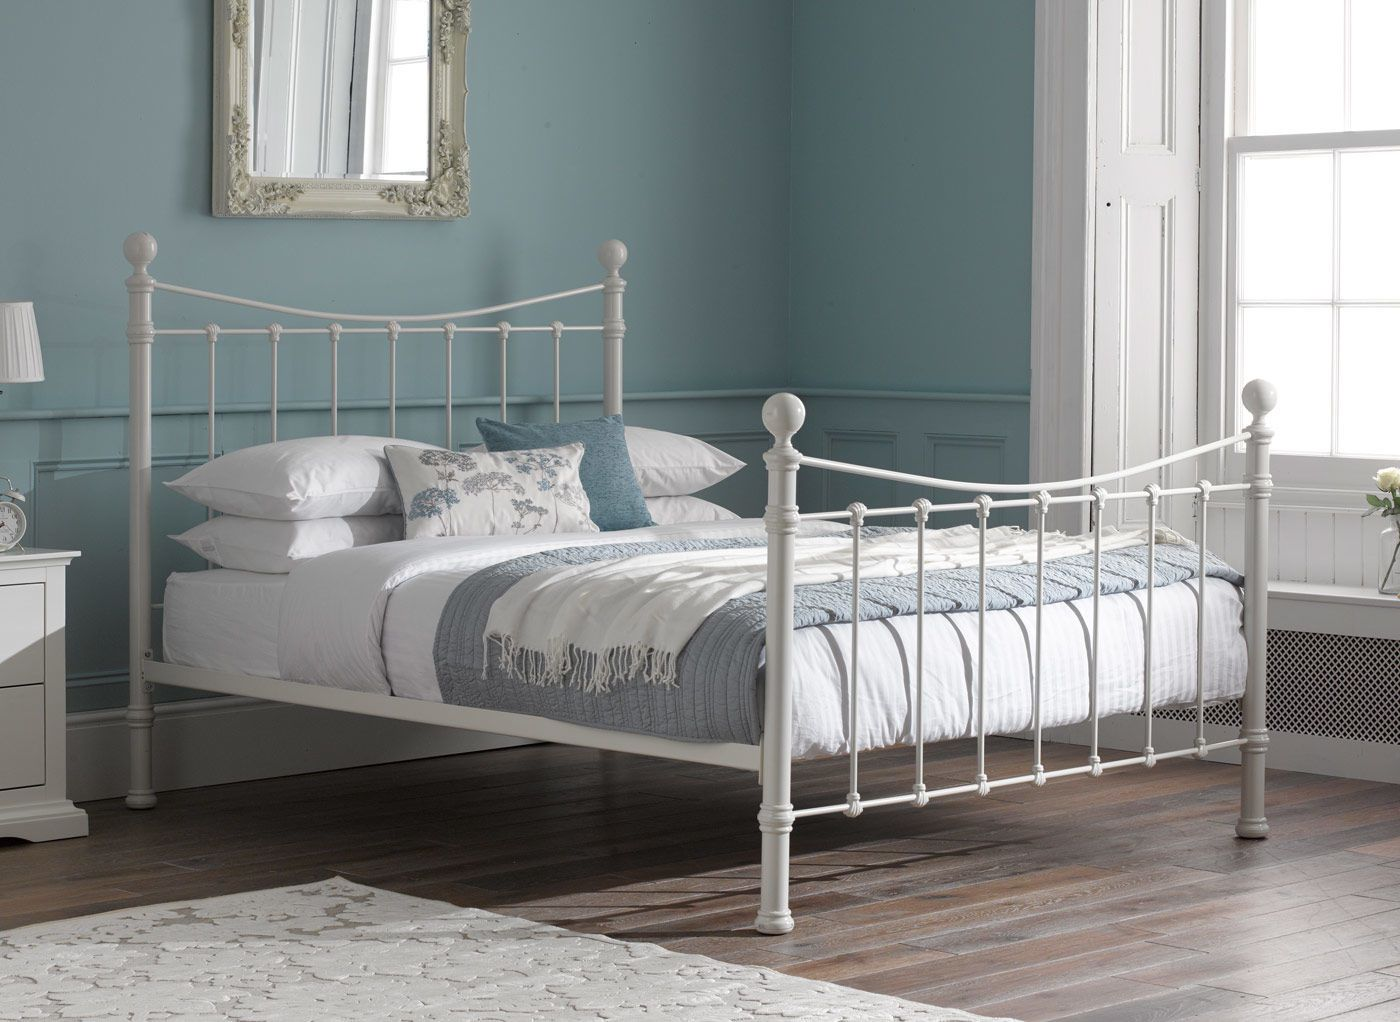 cream metal bed frame master bedroom - Google Search | bedroom ideas ...